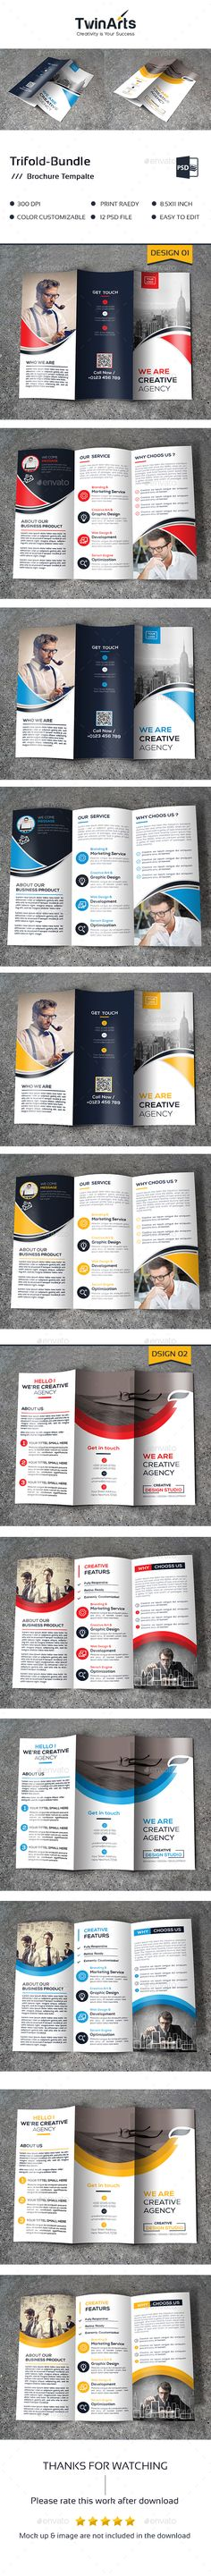 Download 2 in 1 Creative Tri-Fold Brochure Bundle Free Download - free printable tri fold brochure templates